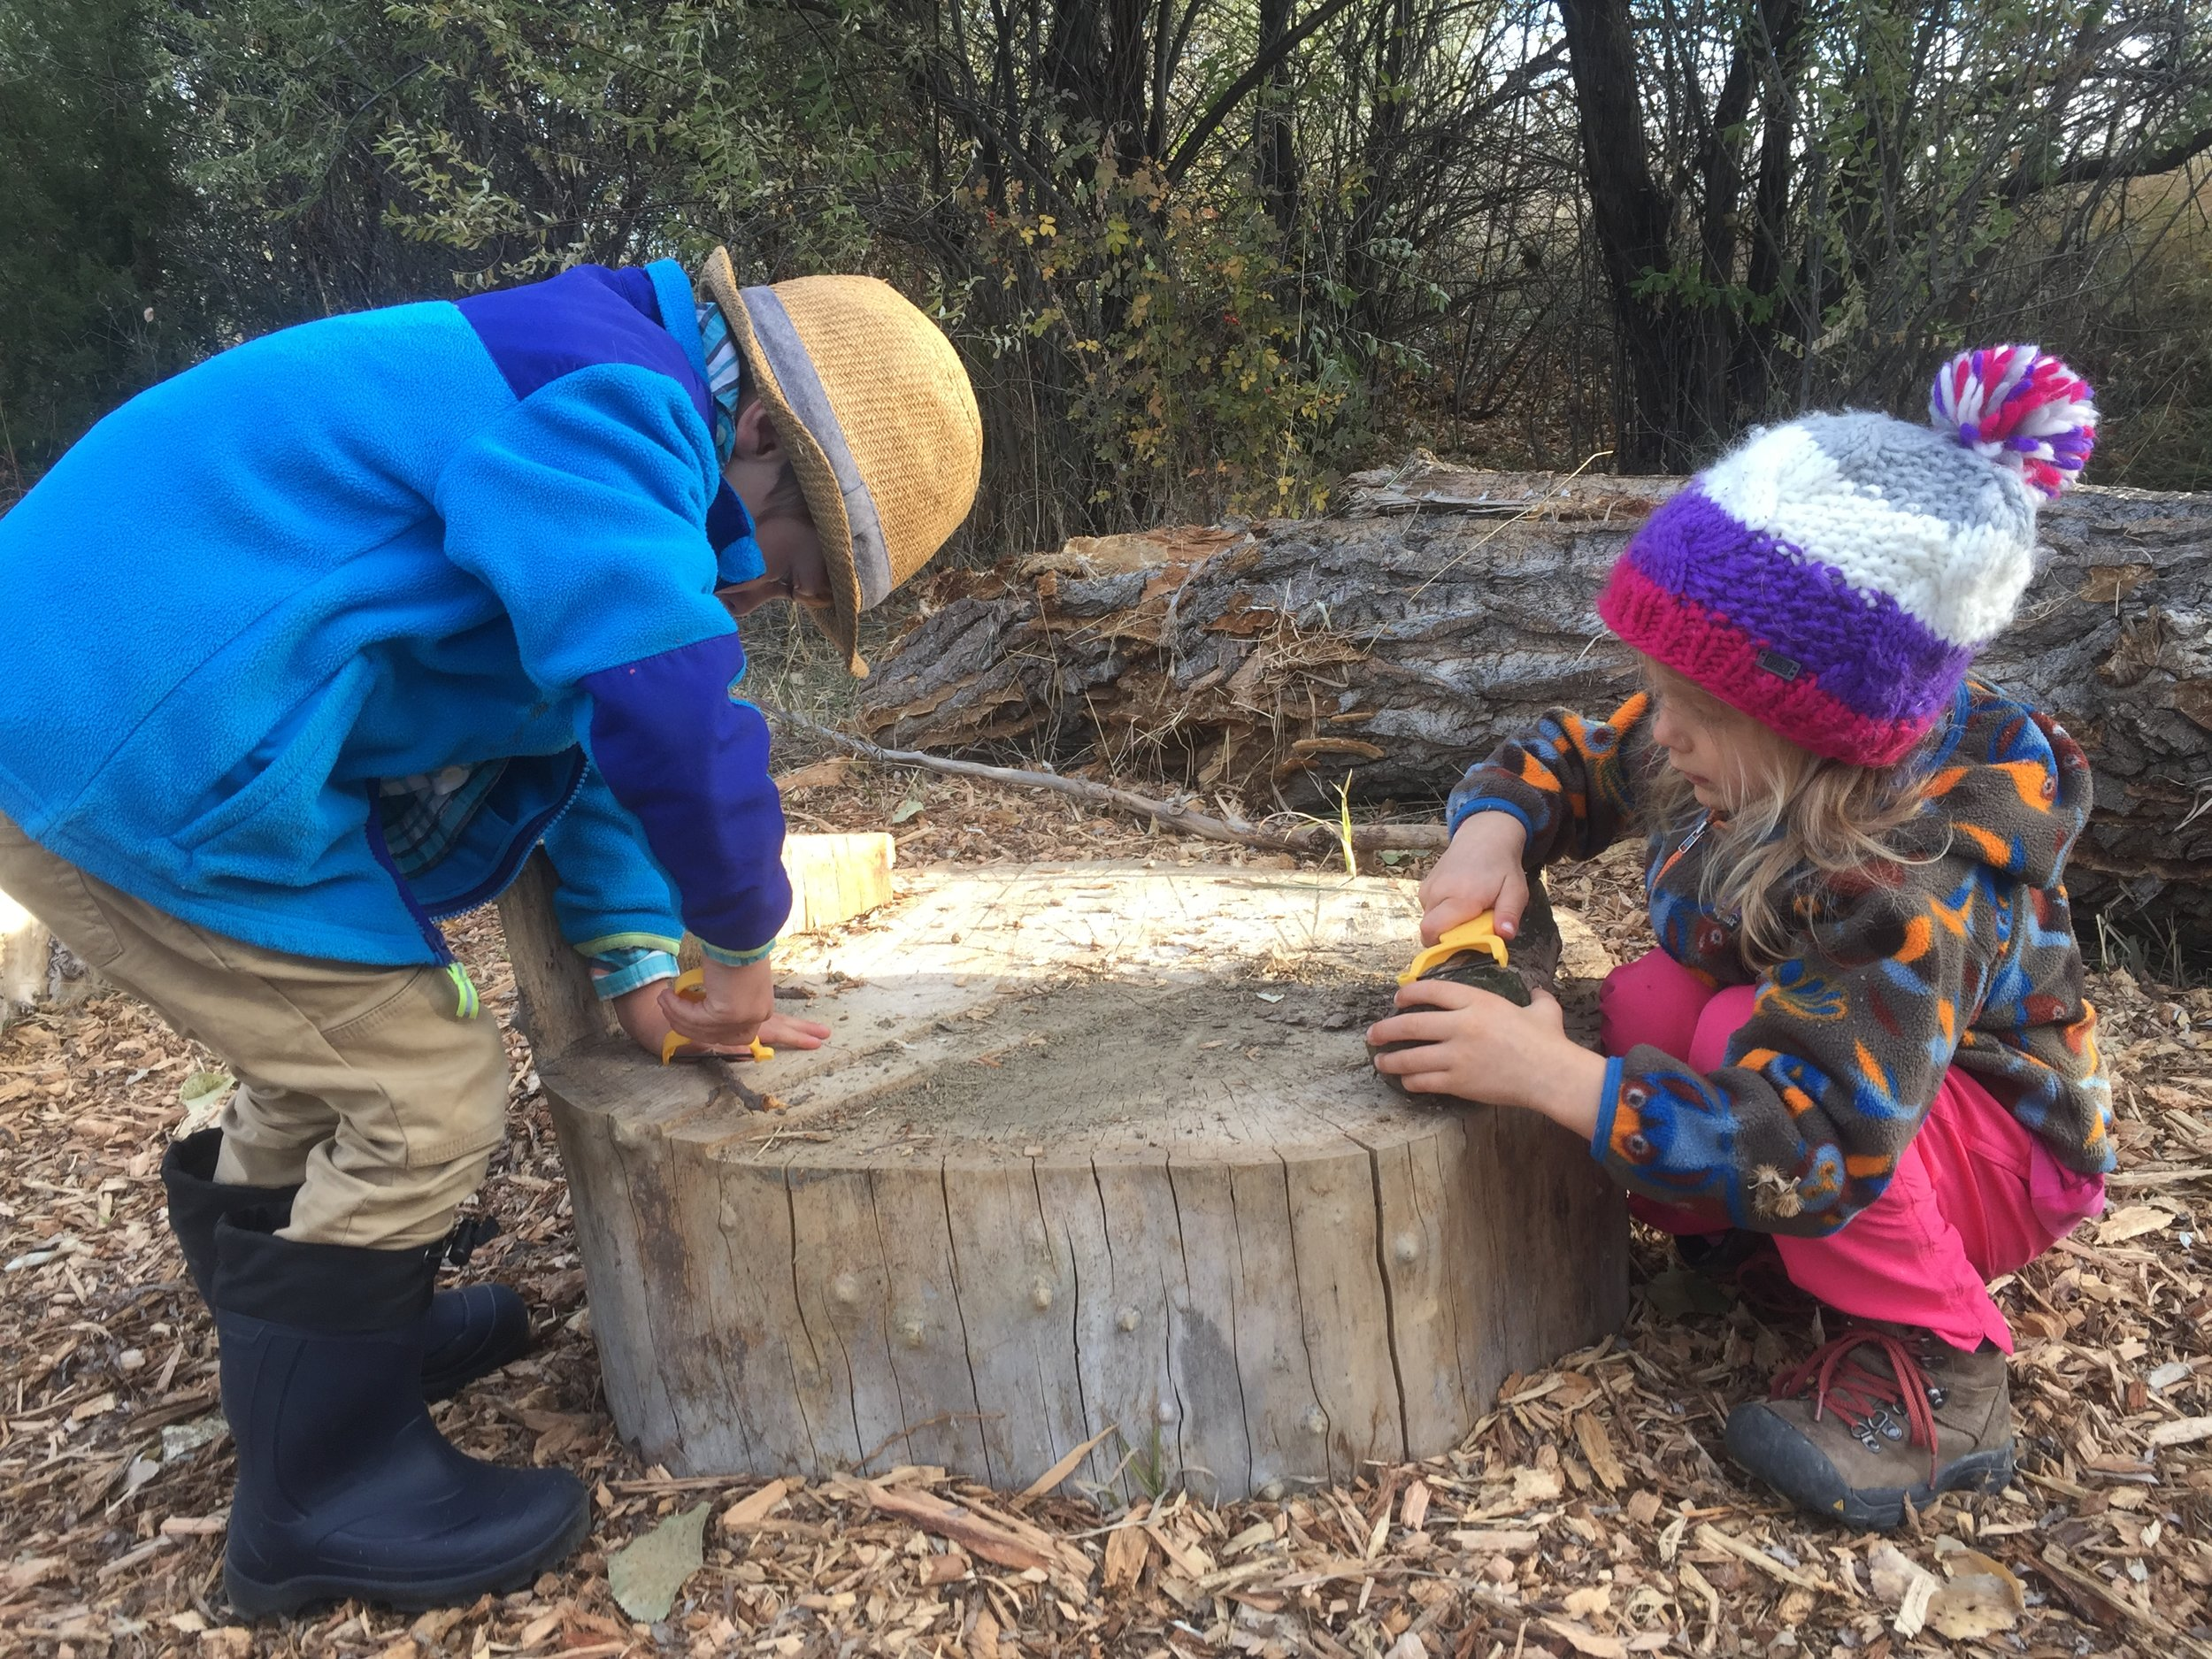 Whittling has begun! Many of the children have been interested to try peeling a stick with a veggie peeler. They have been very responsible about using the peelers safely. It is exciting to see the beautiful swirls of color under the bark.